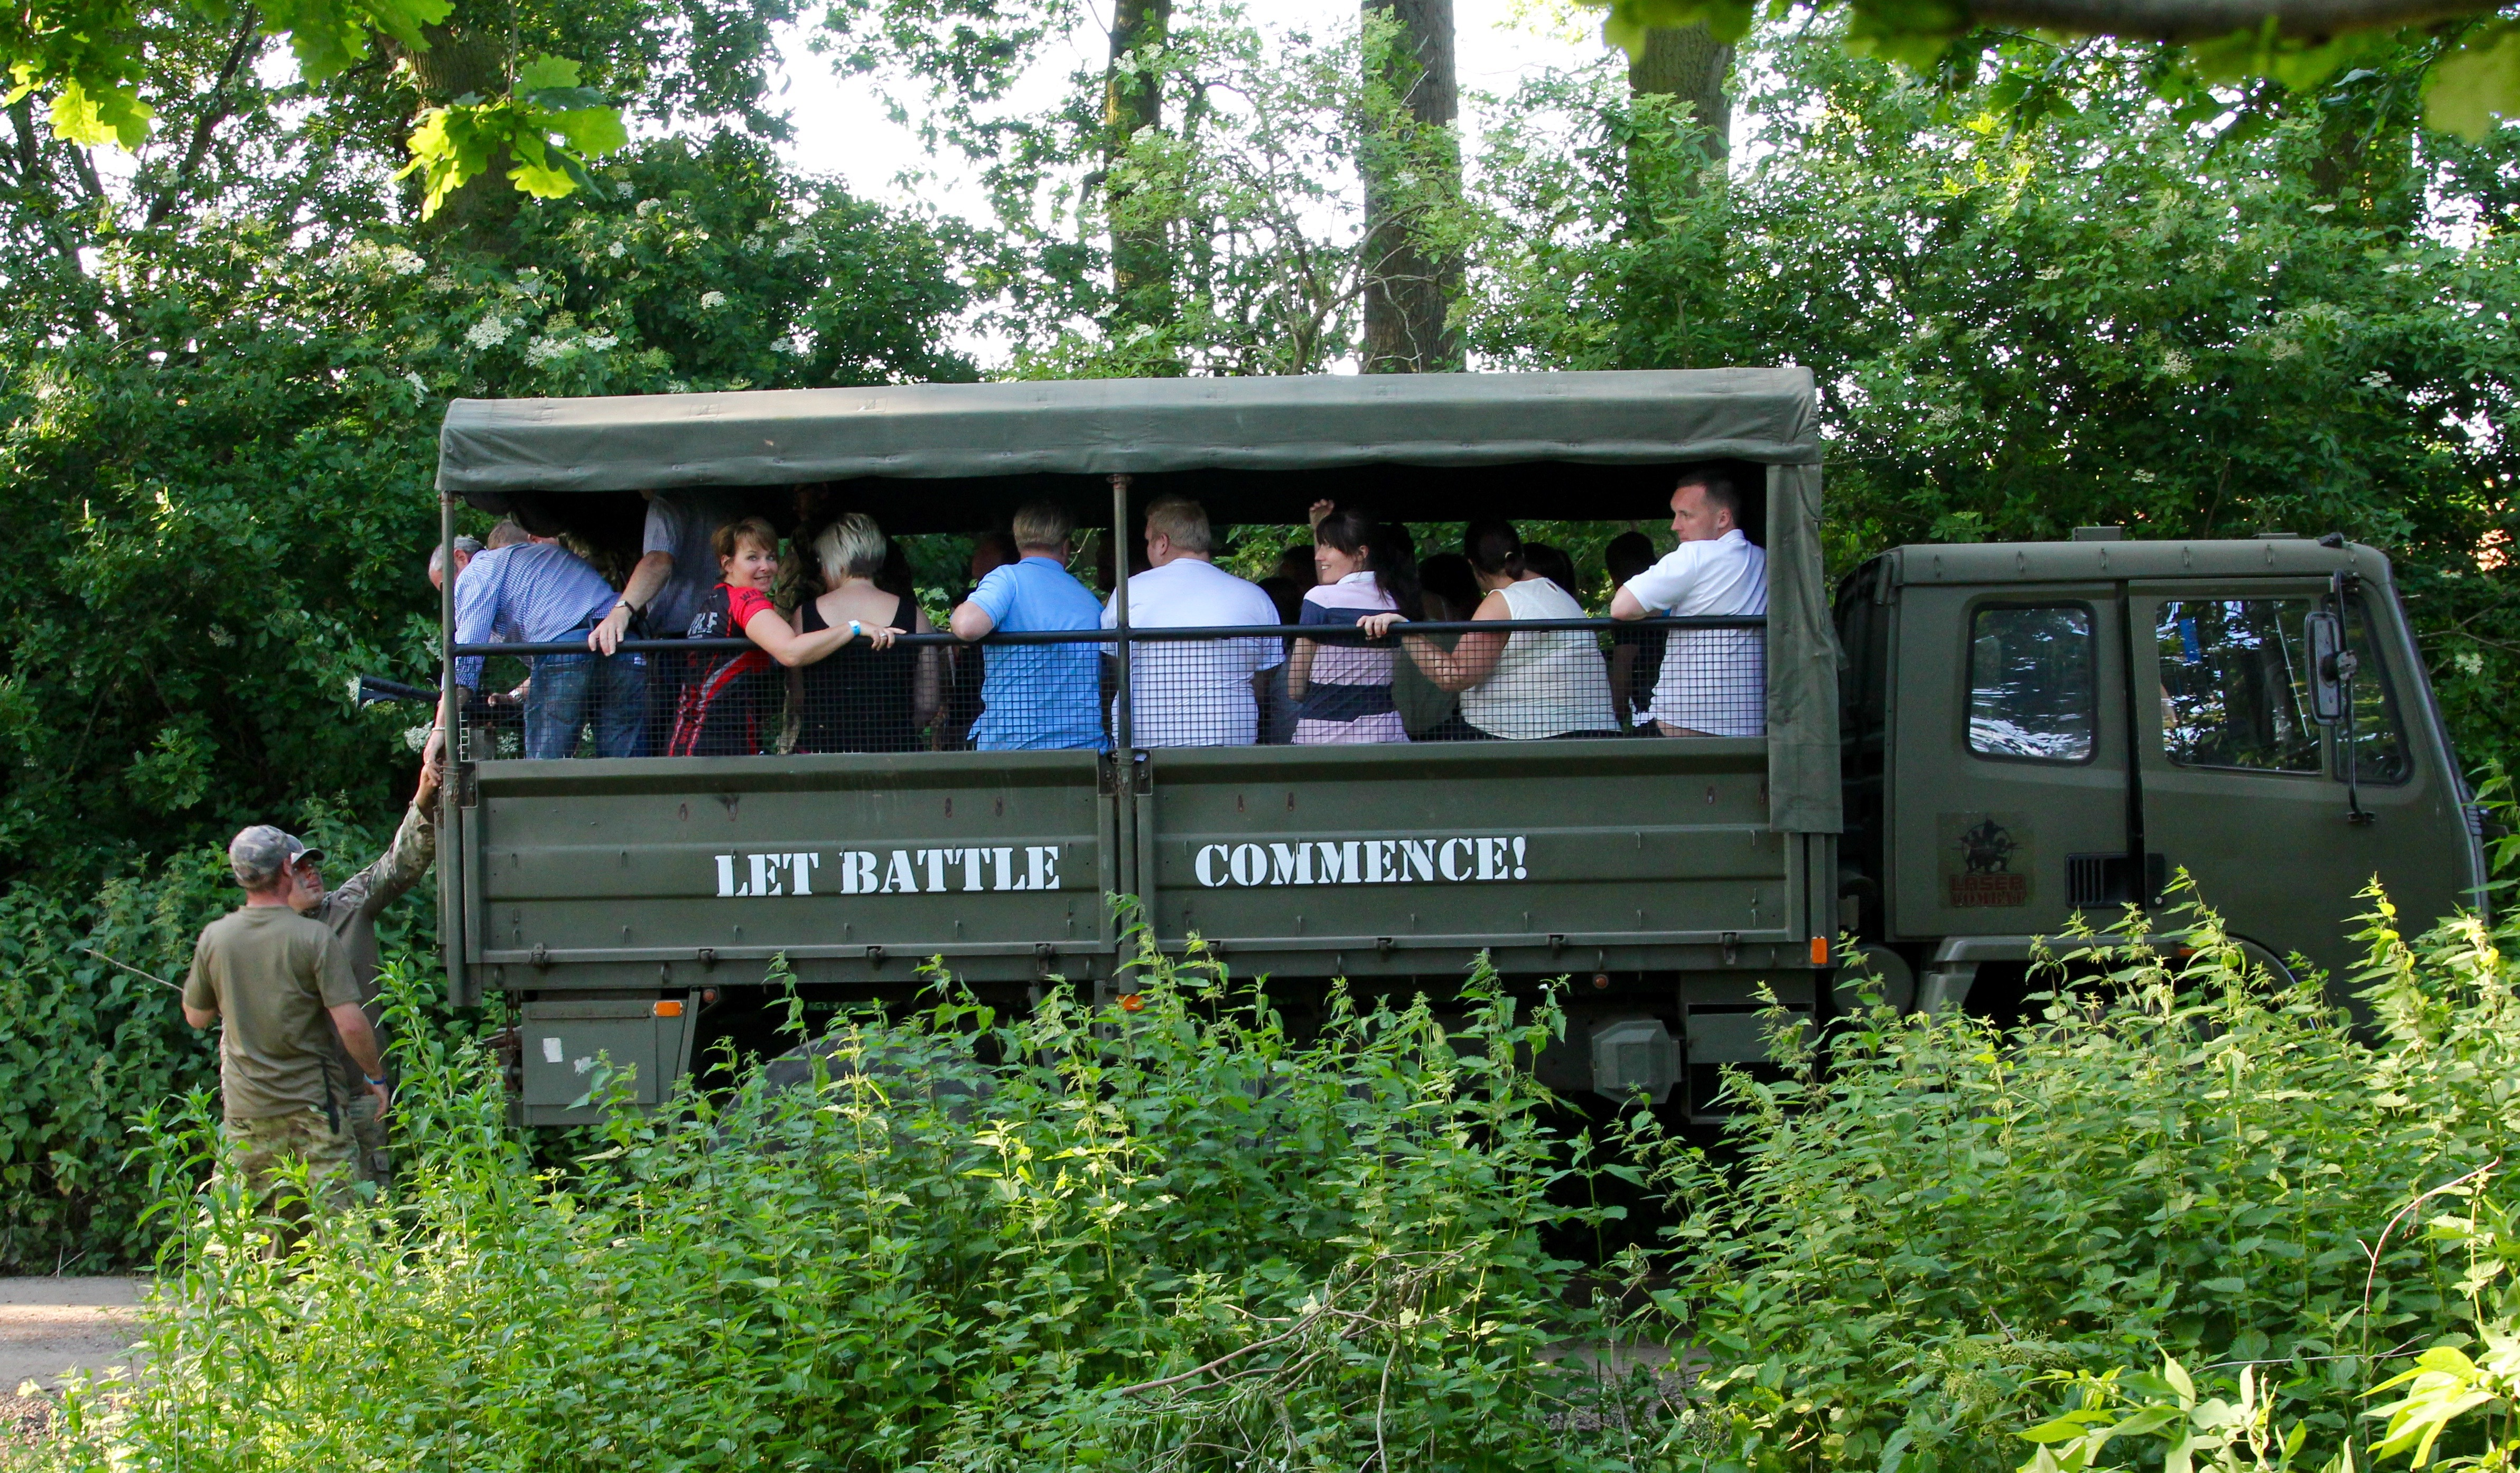 combatants-transported-to-battle-field-in-army-truck